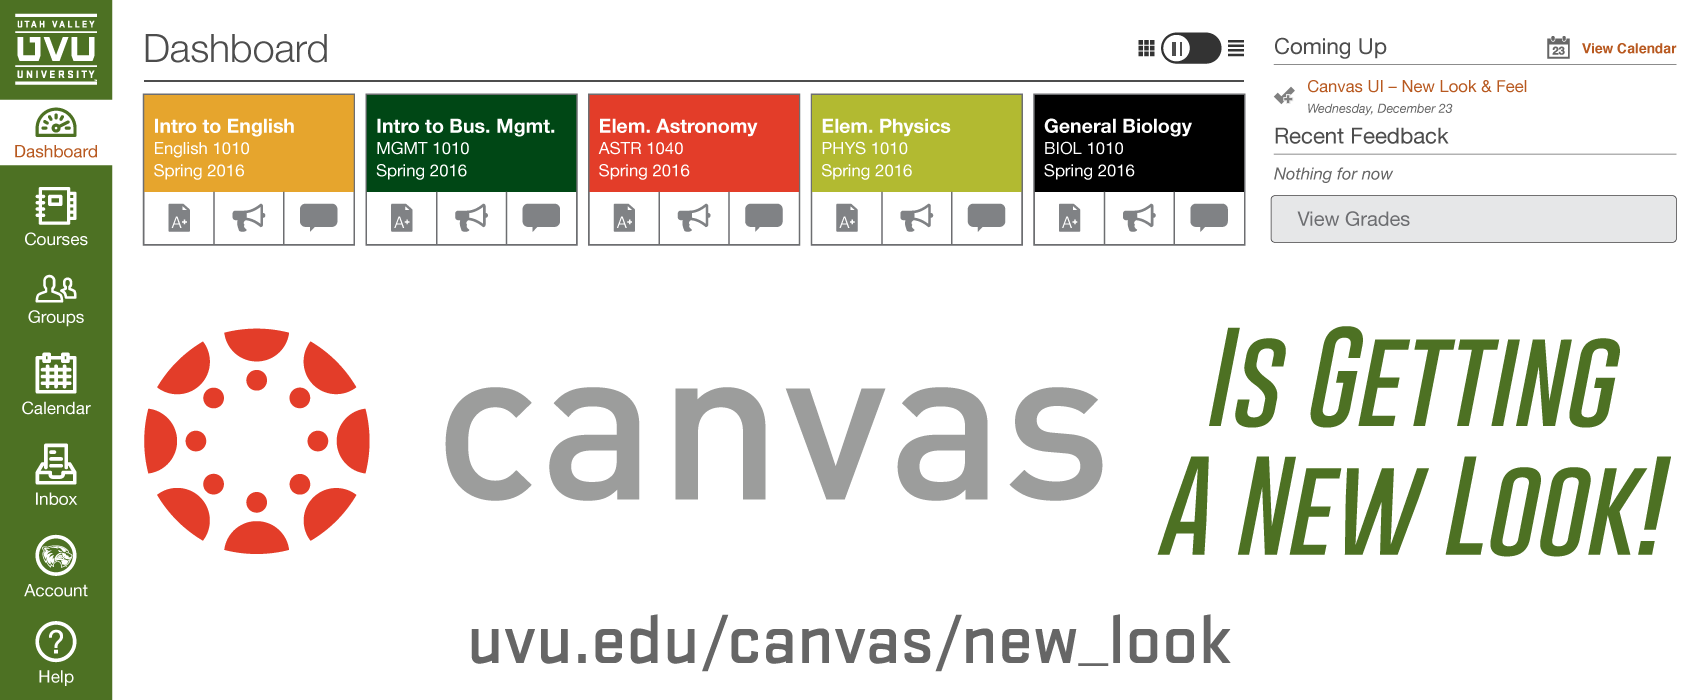 Canvas is getting a new look on December 23rd!